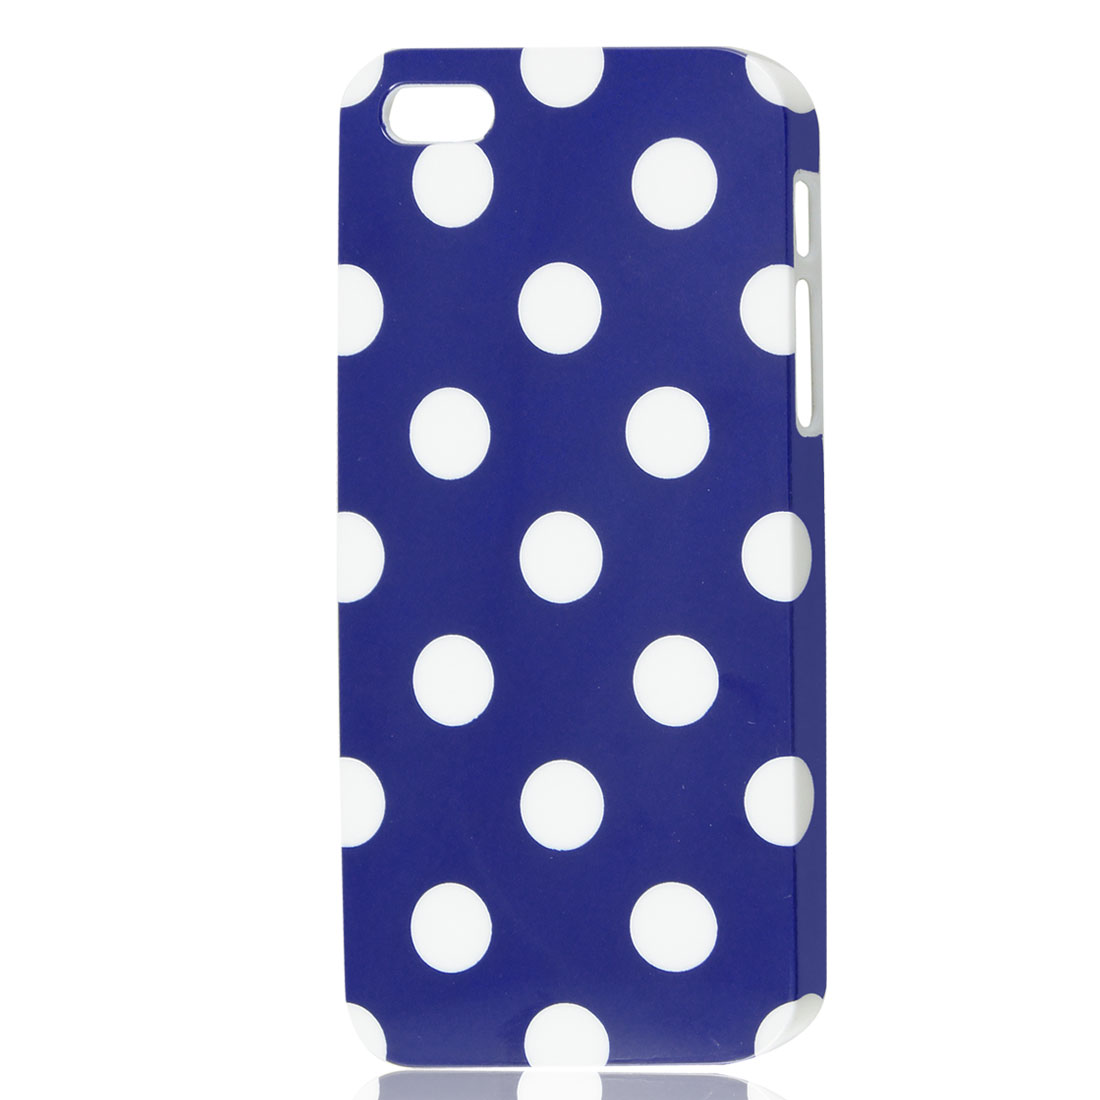 White Polka Dots Pattern Blue Hard Skin Case Cover for iPhone 5 5G